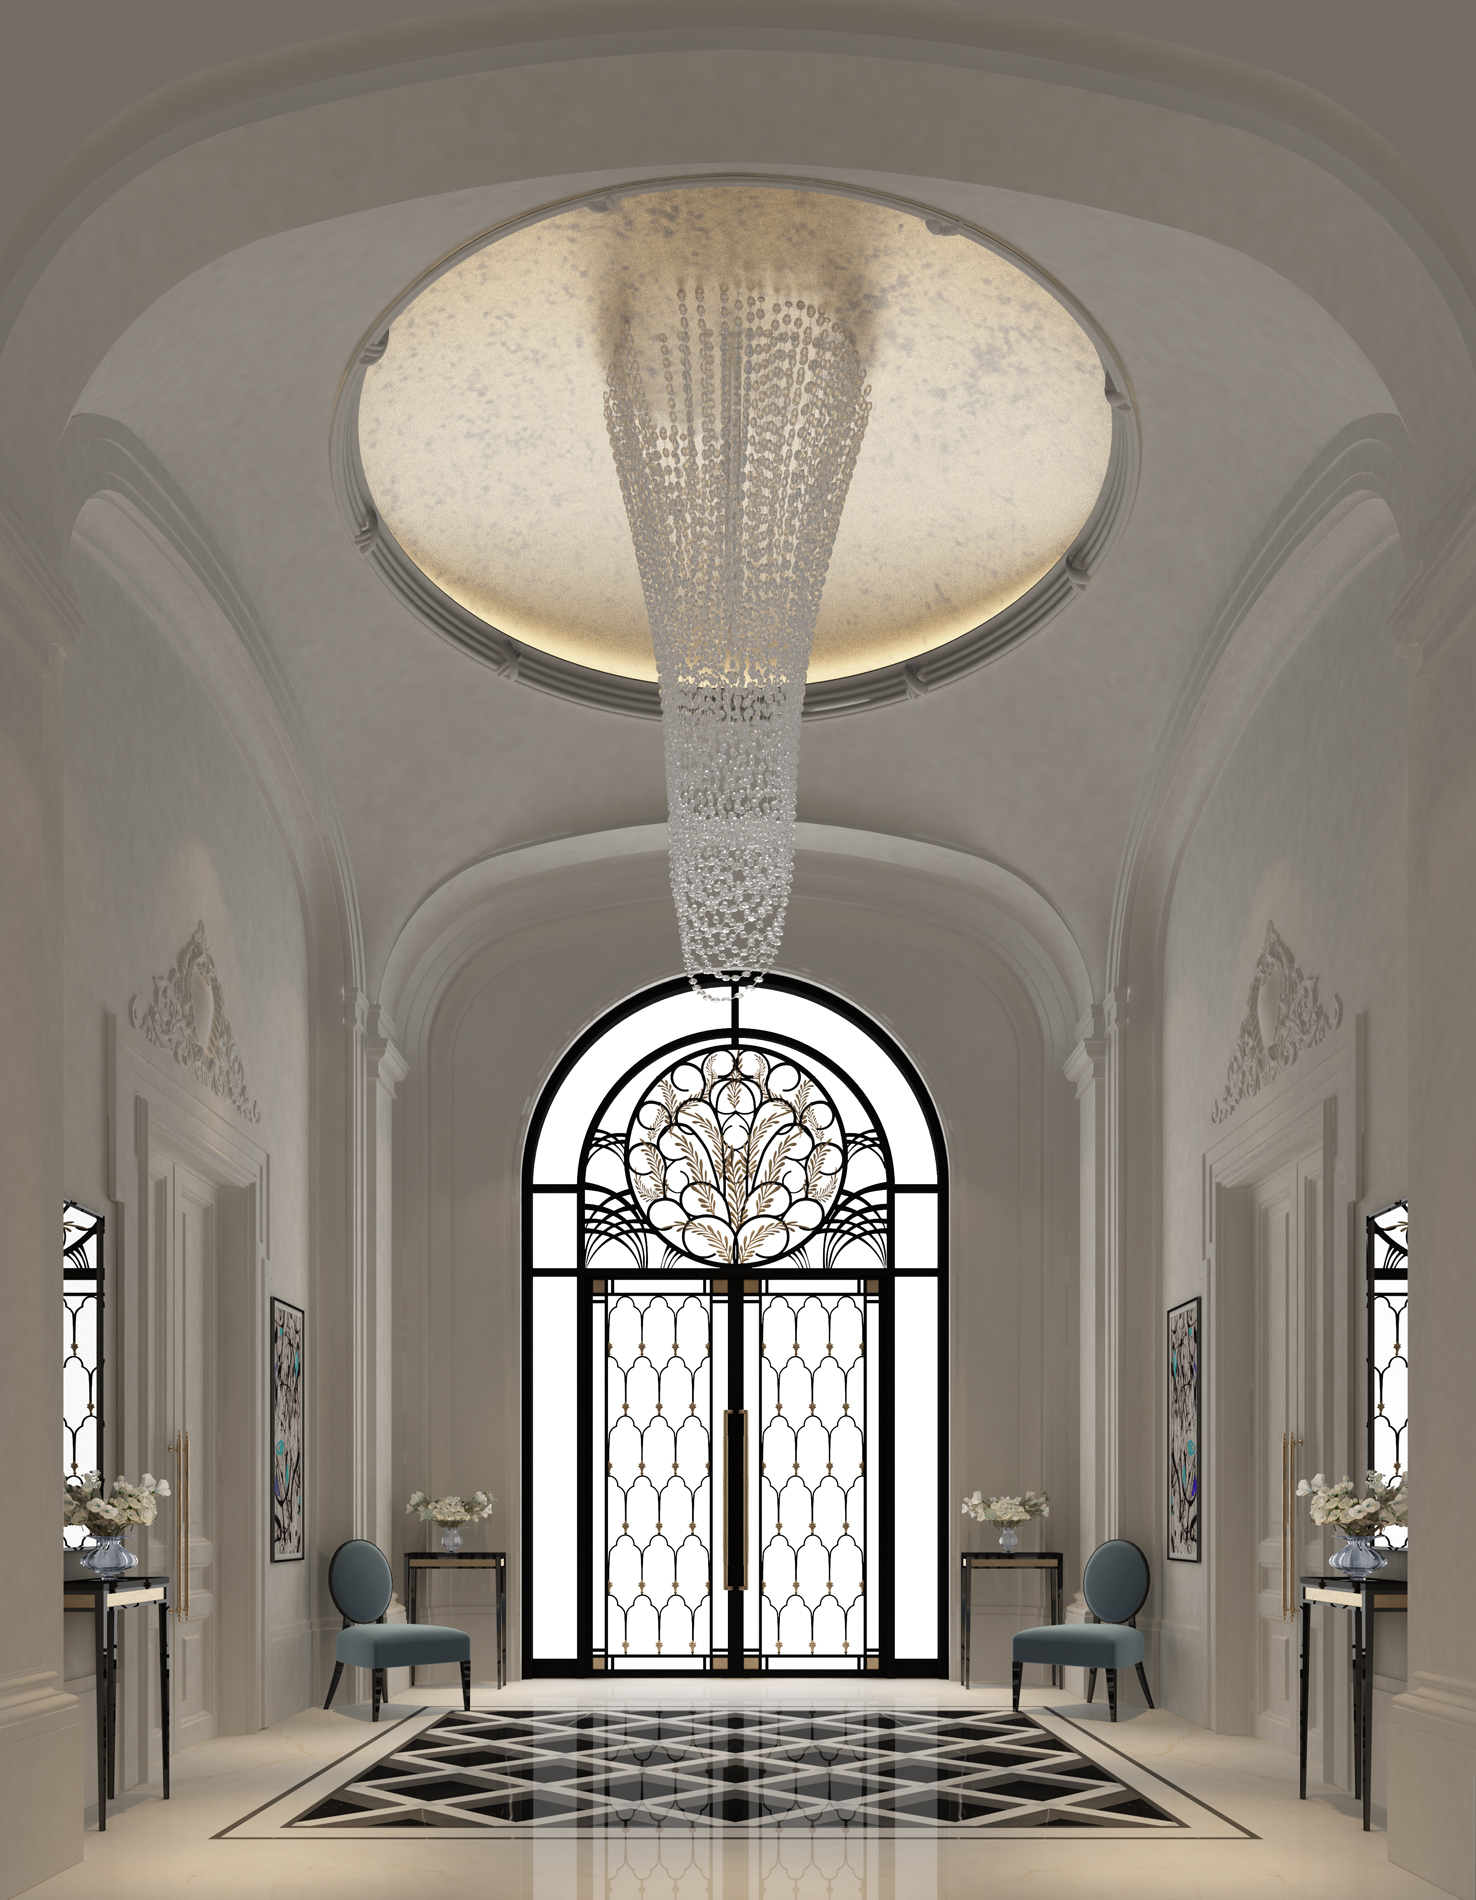 Ions luxury interior design dubai interior design for Door design uae